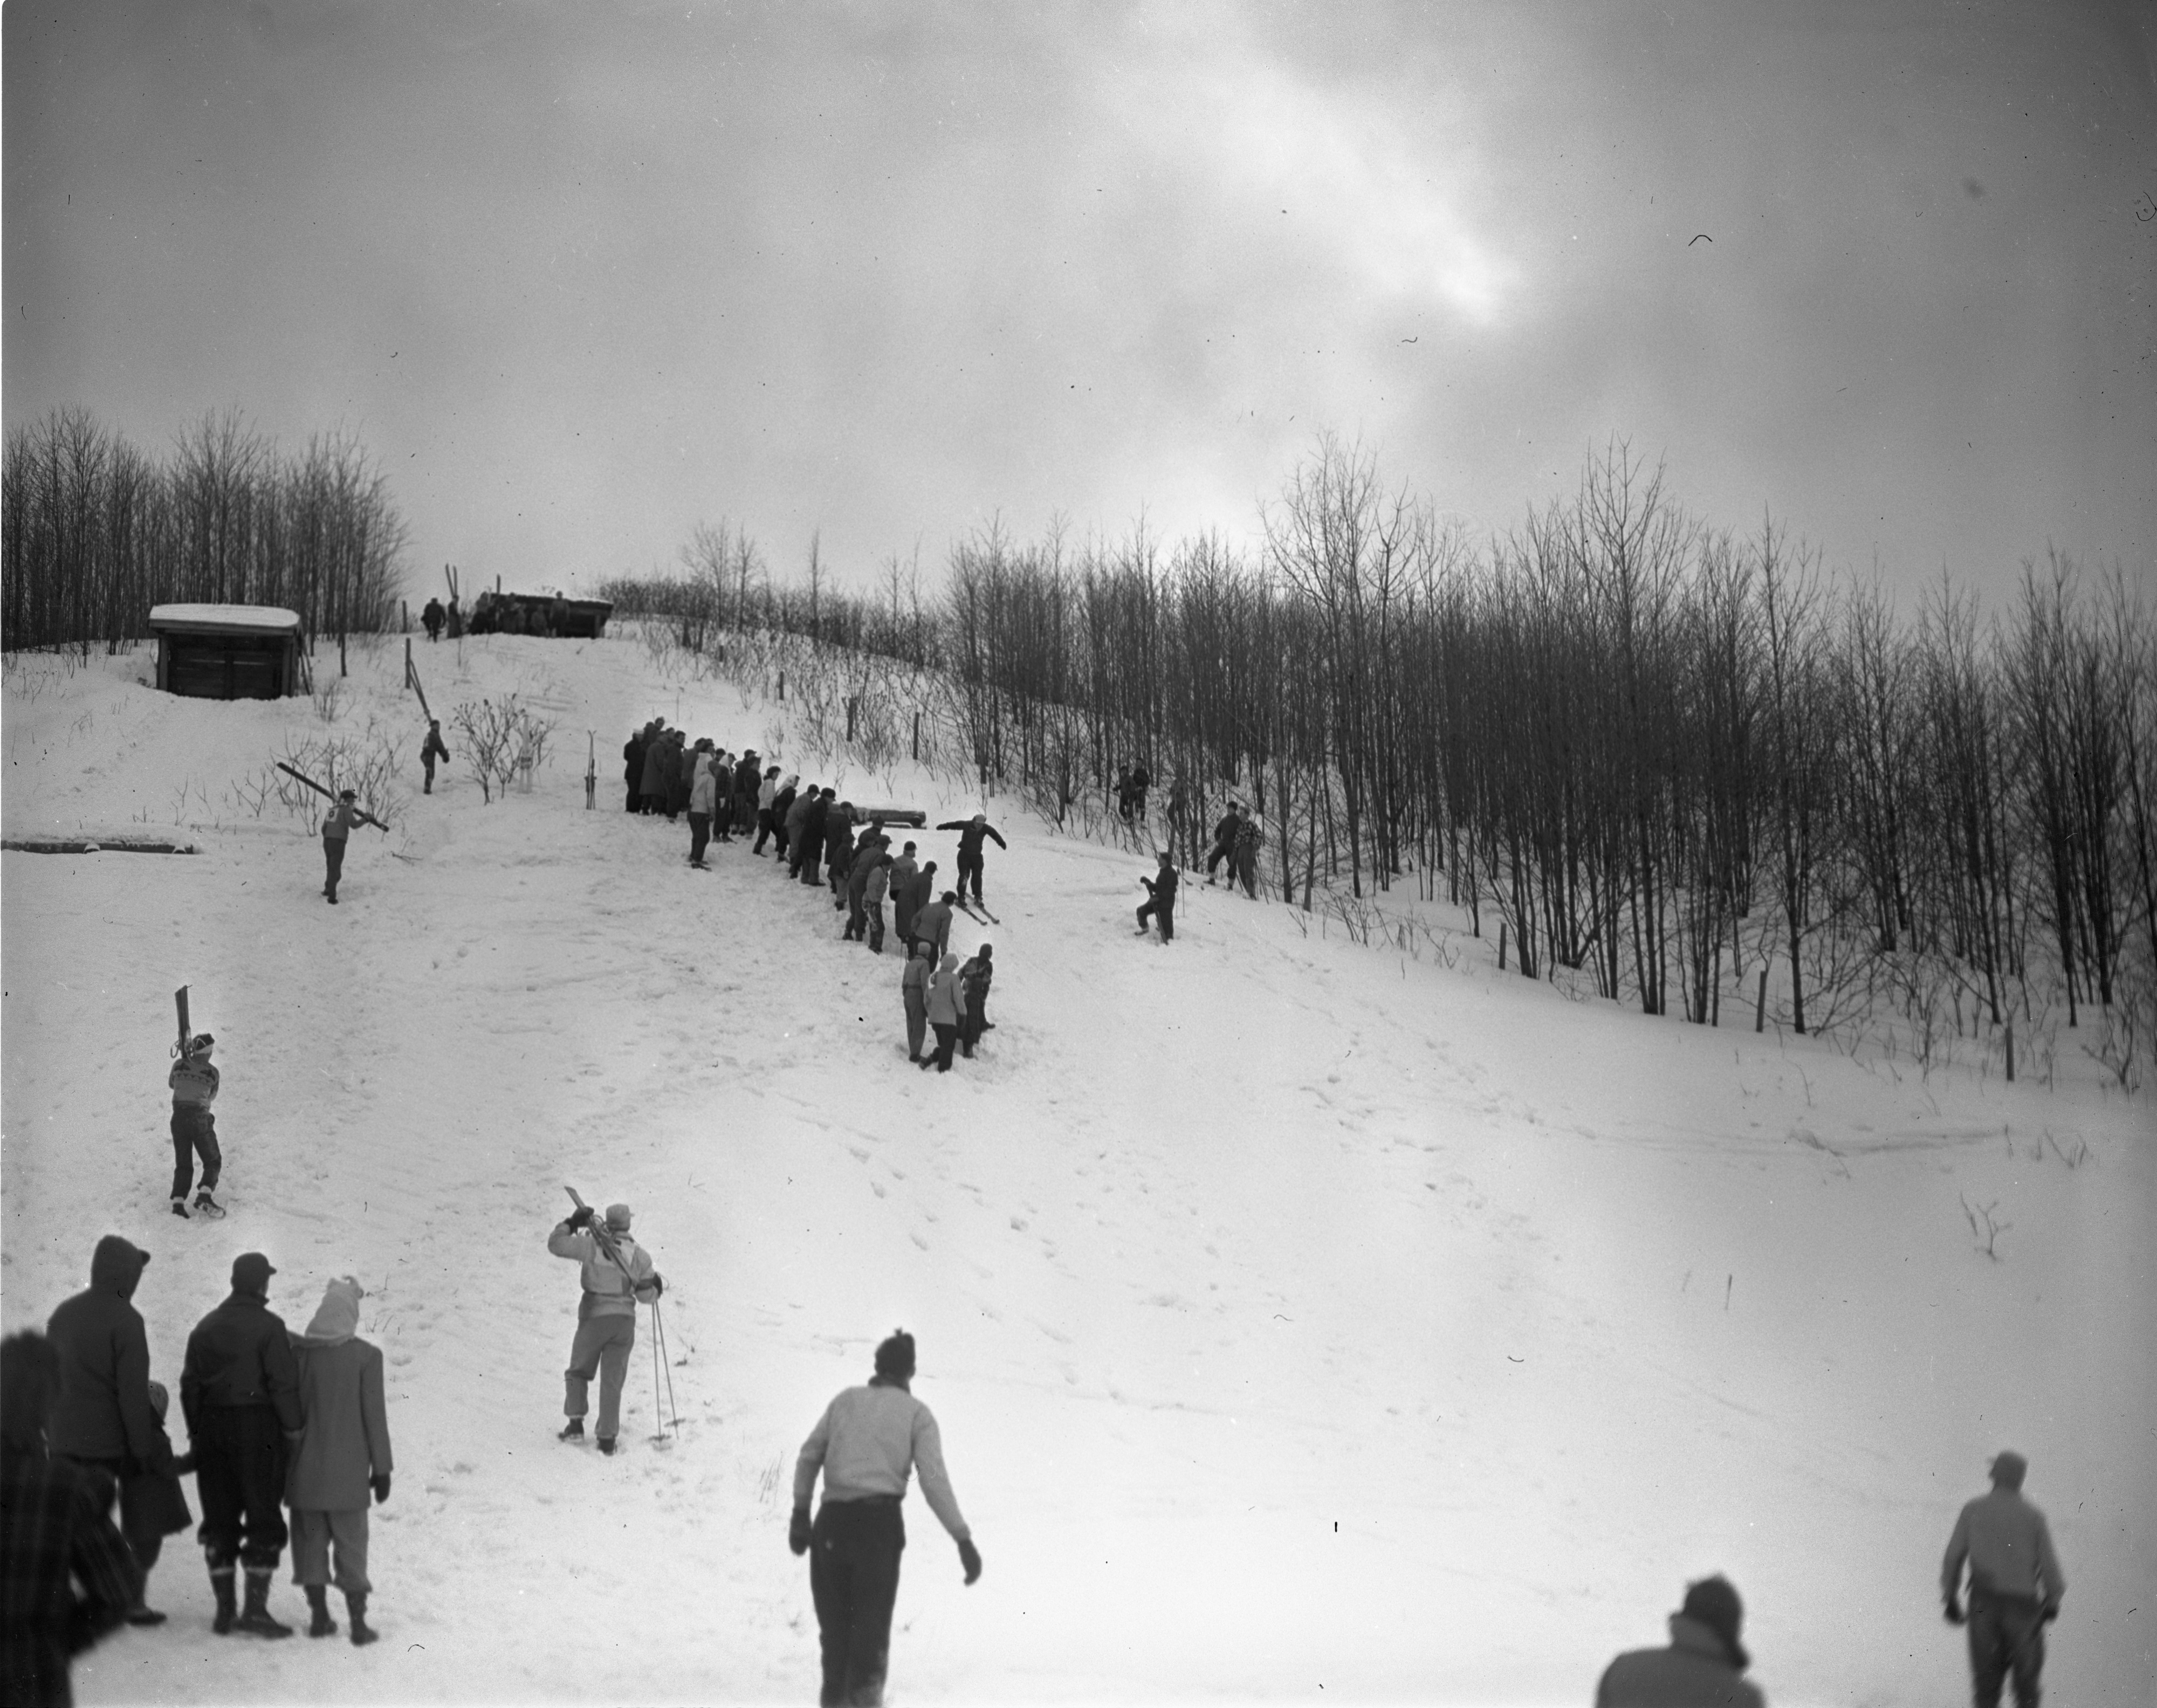 Onlookers Surround A Ski Jump At Caberfae In Cadillac, February 1946 image